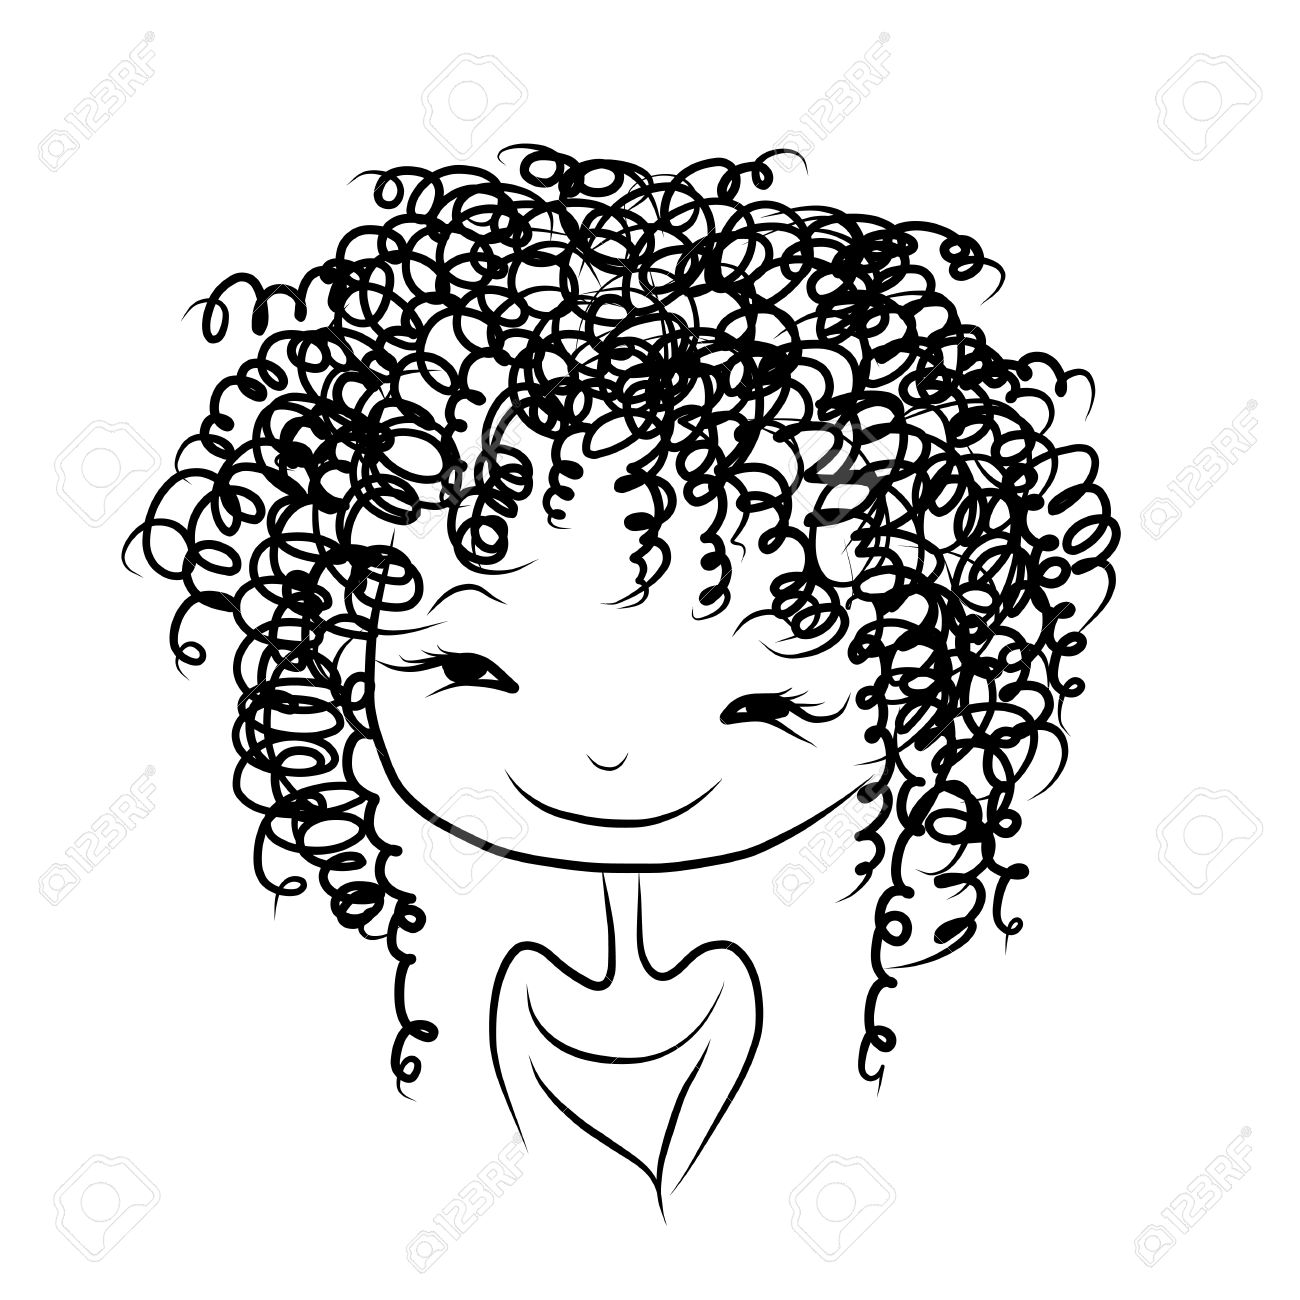 png black and white download Afro clipart sketch. Transparent free for .